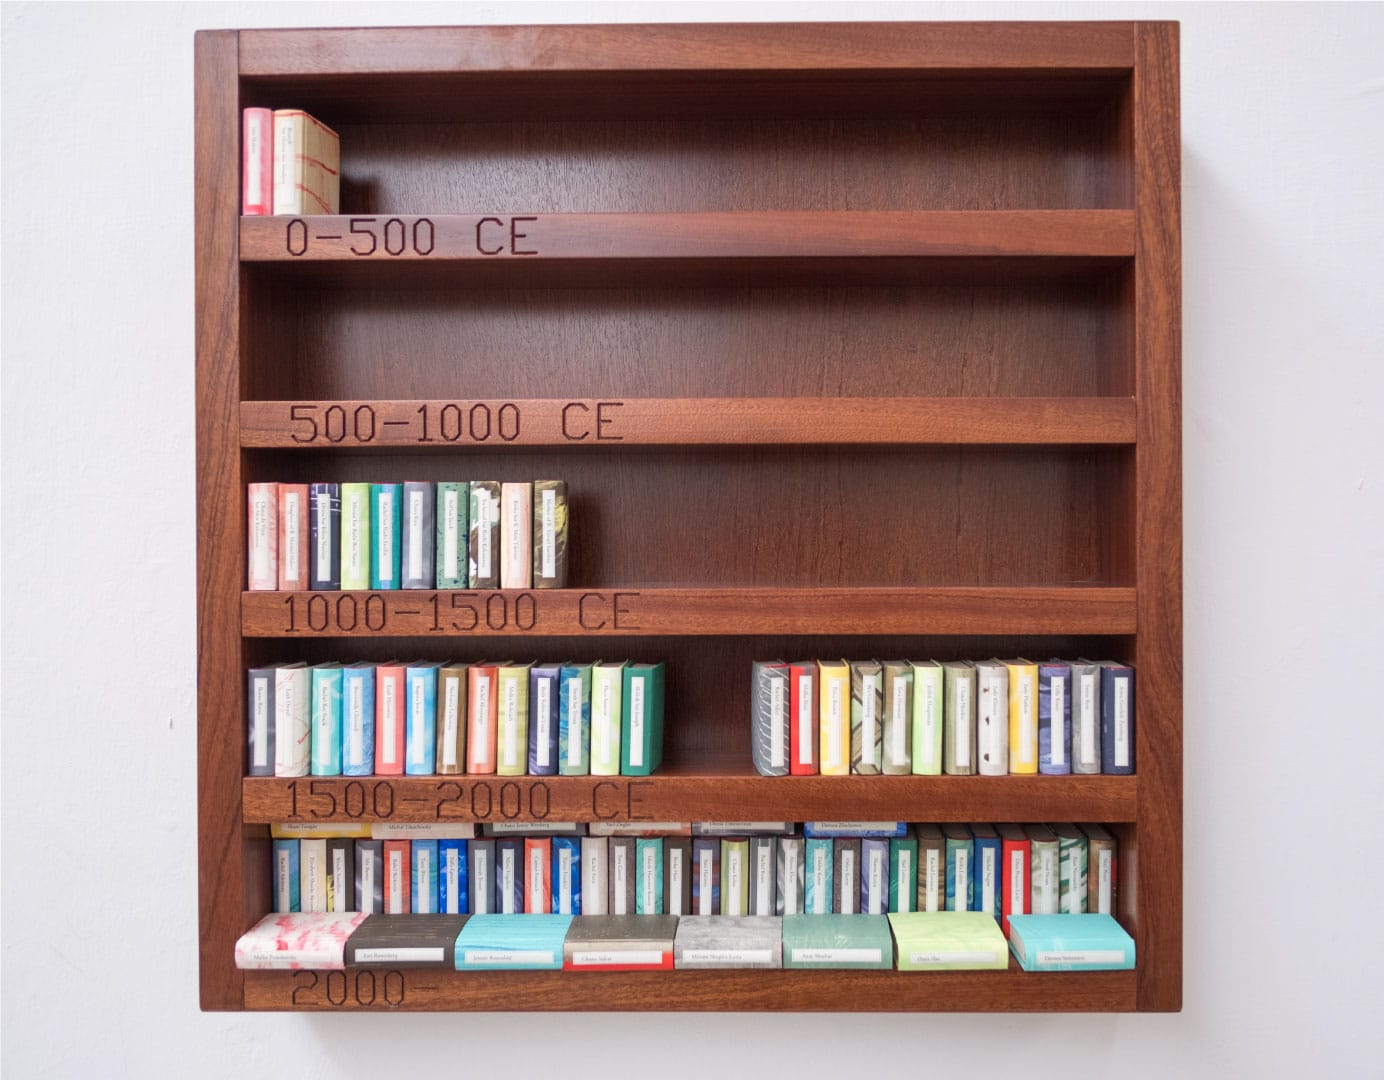 Ruth Schreiber, Progress at last: My Personal Bookcase, 2016. Wood and paper, 60 × 60 × 10 cm. Artist's collection